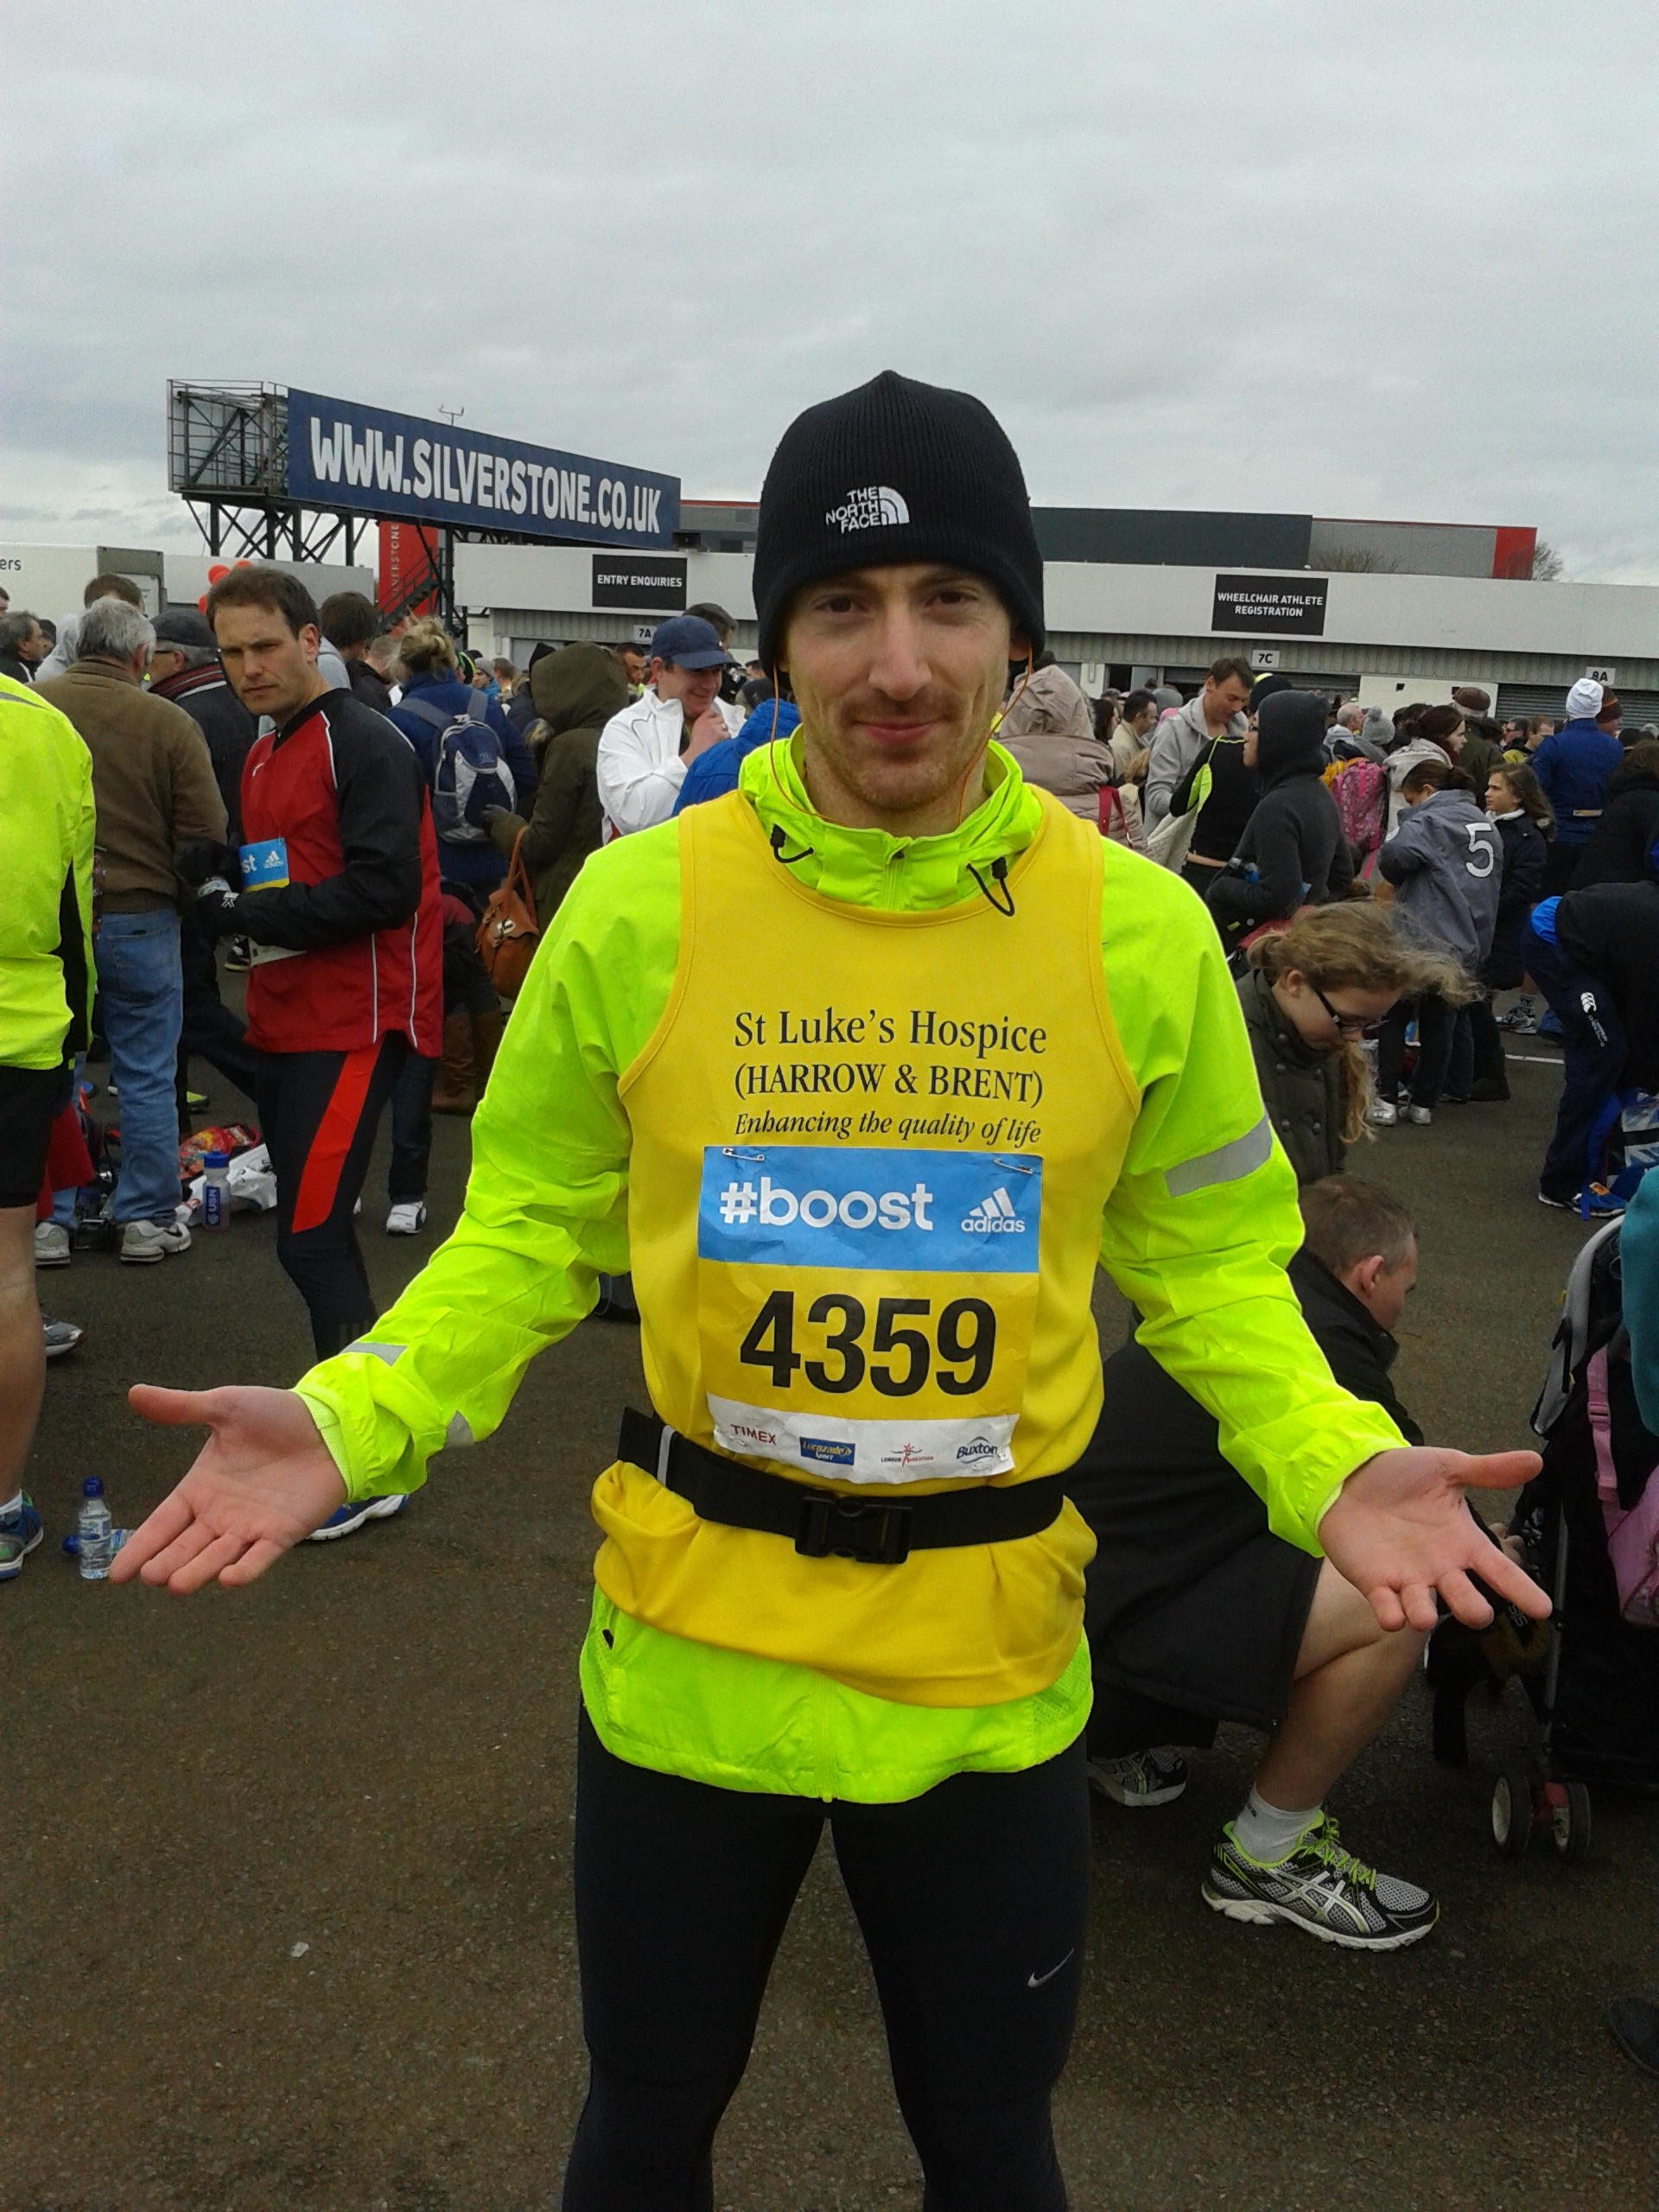 Ashley Rubinstein after completing the Silverstone half marathon